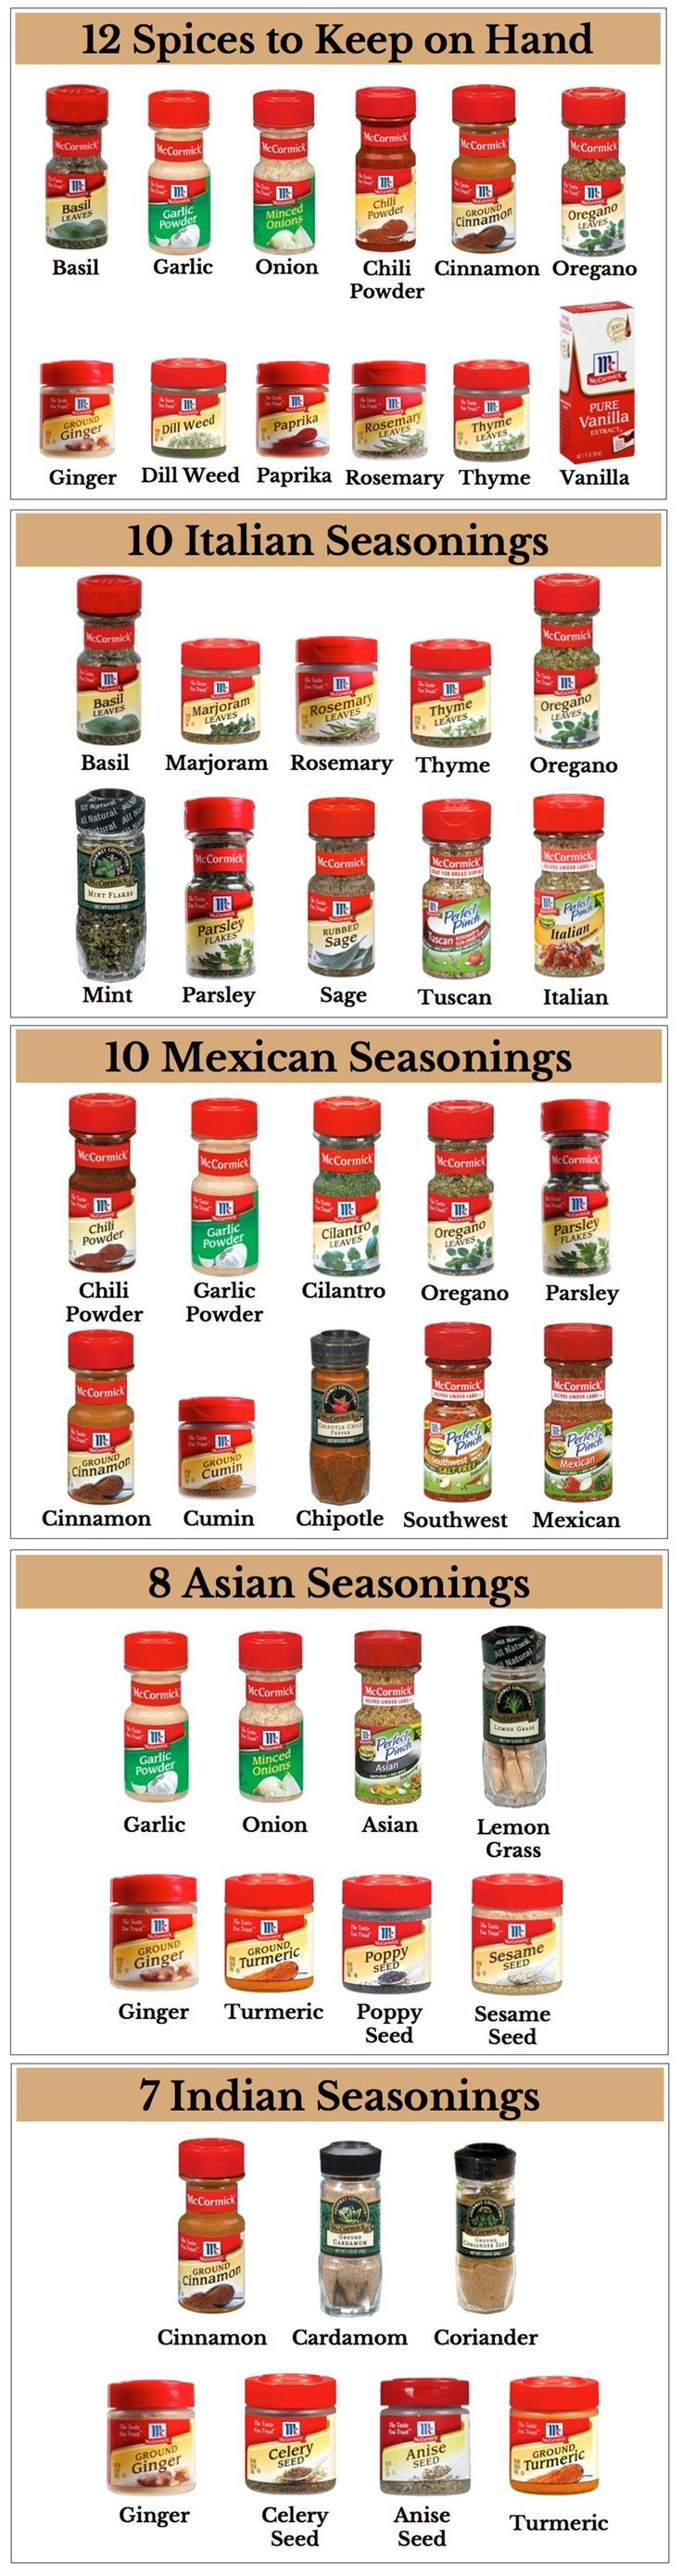 Great suggestion of spices to keep on hand and what spices to put together to create certain ethnic flavors.